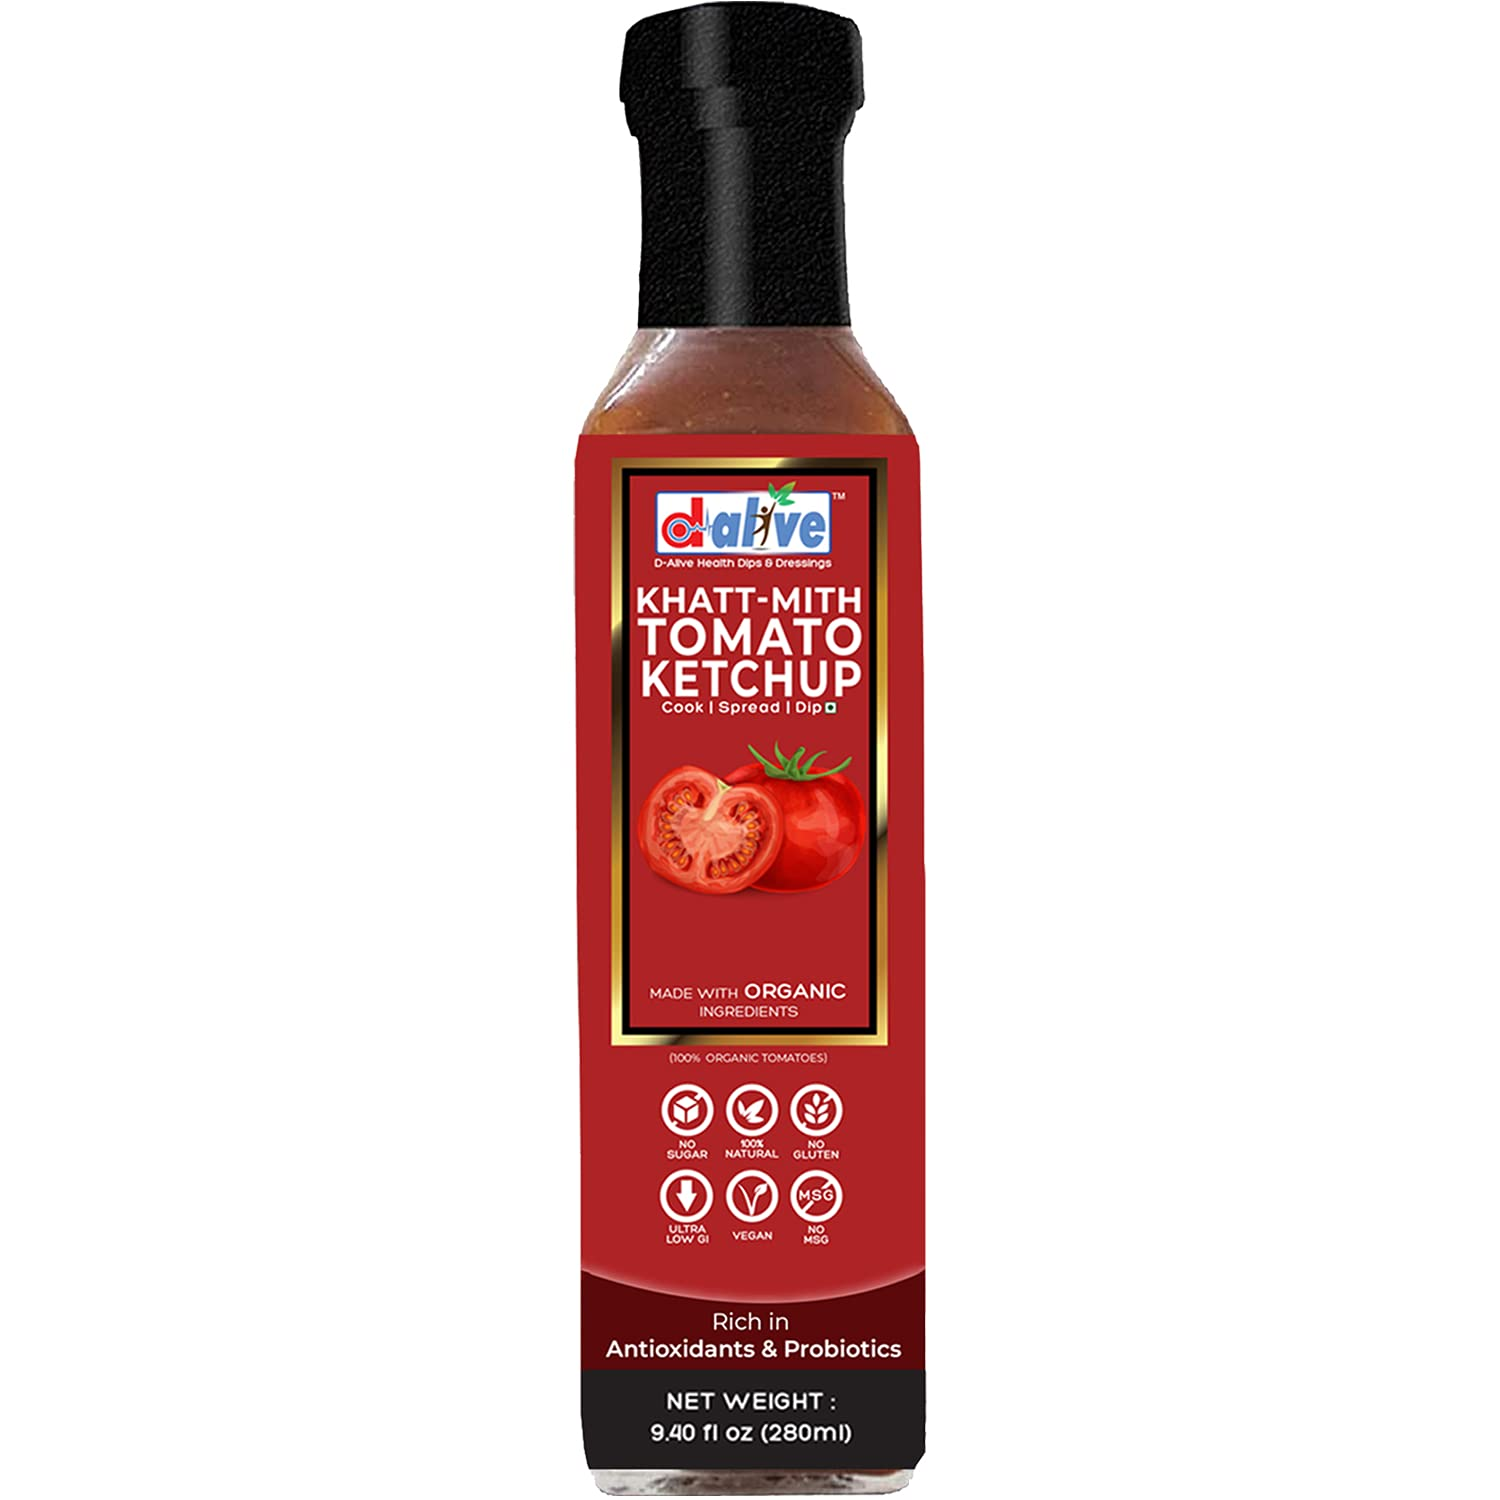 Organic Khatt-Mith Tomato Ketchup Cheap sale 9.40 oz. Glass - Max 59% OFF in B Packed